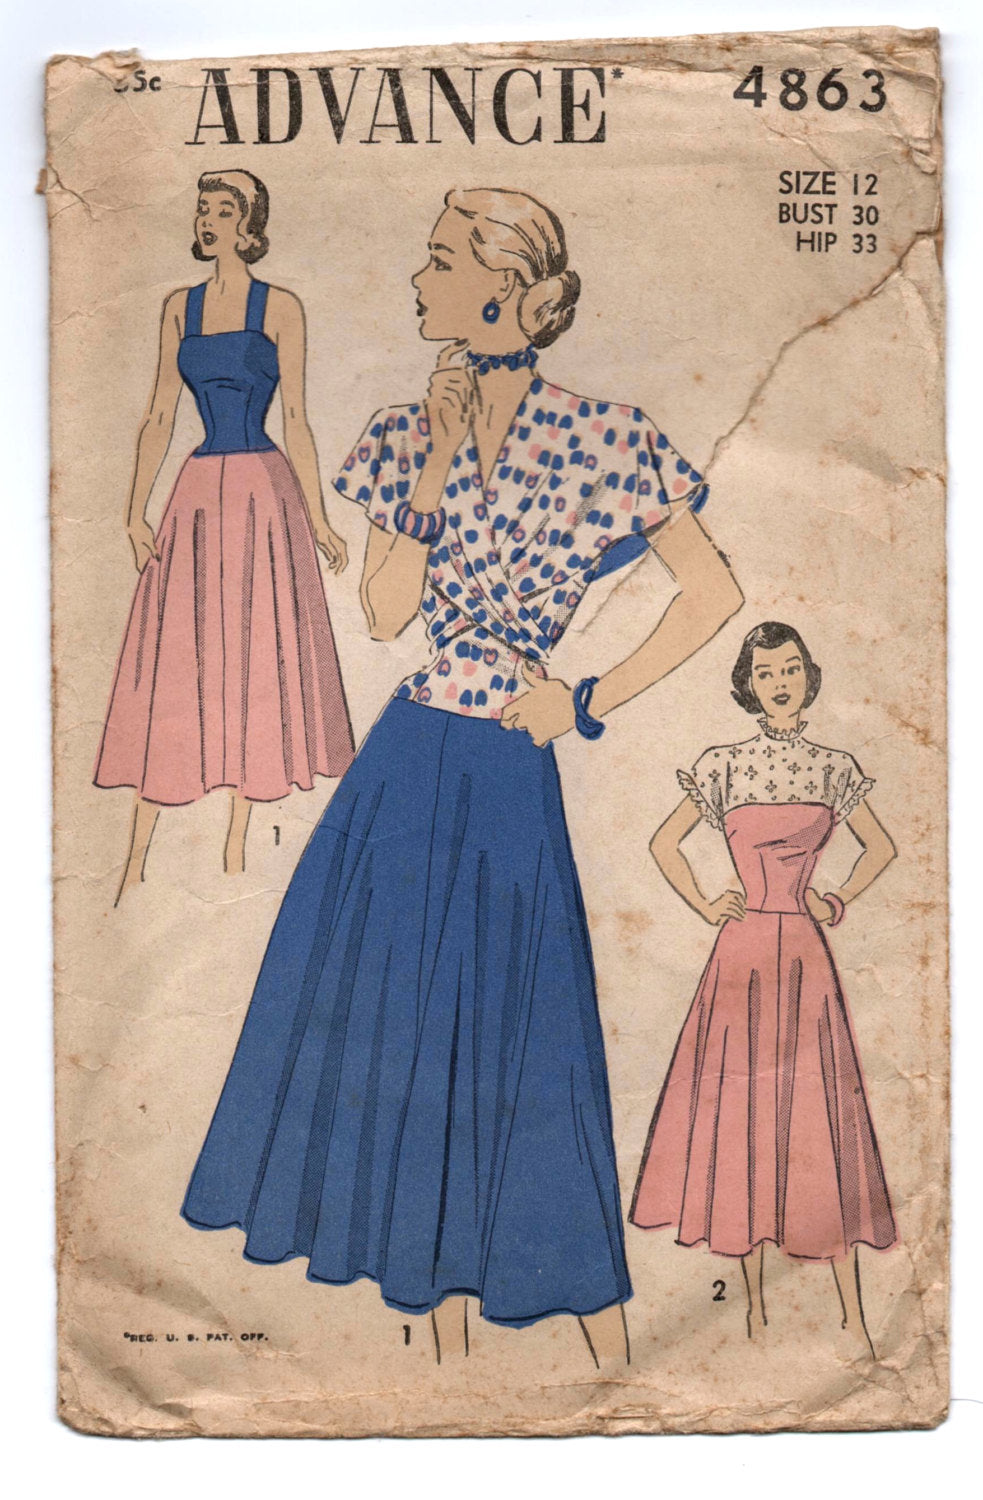 1950's Advance One-Piece Summer Dress with Wrap-around Cape Pattern - Bust 30